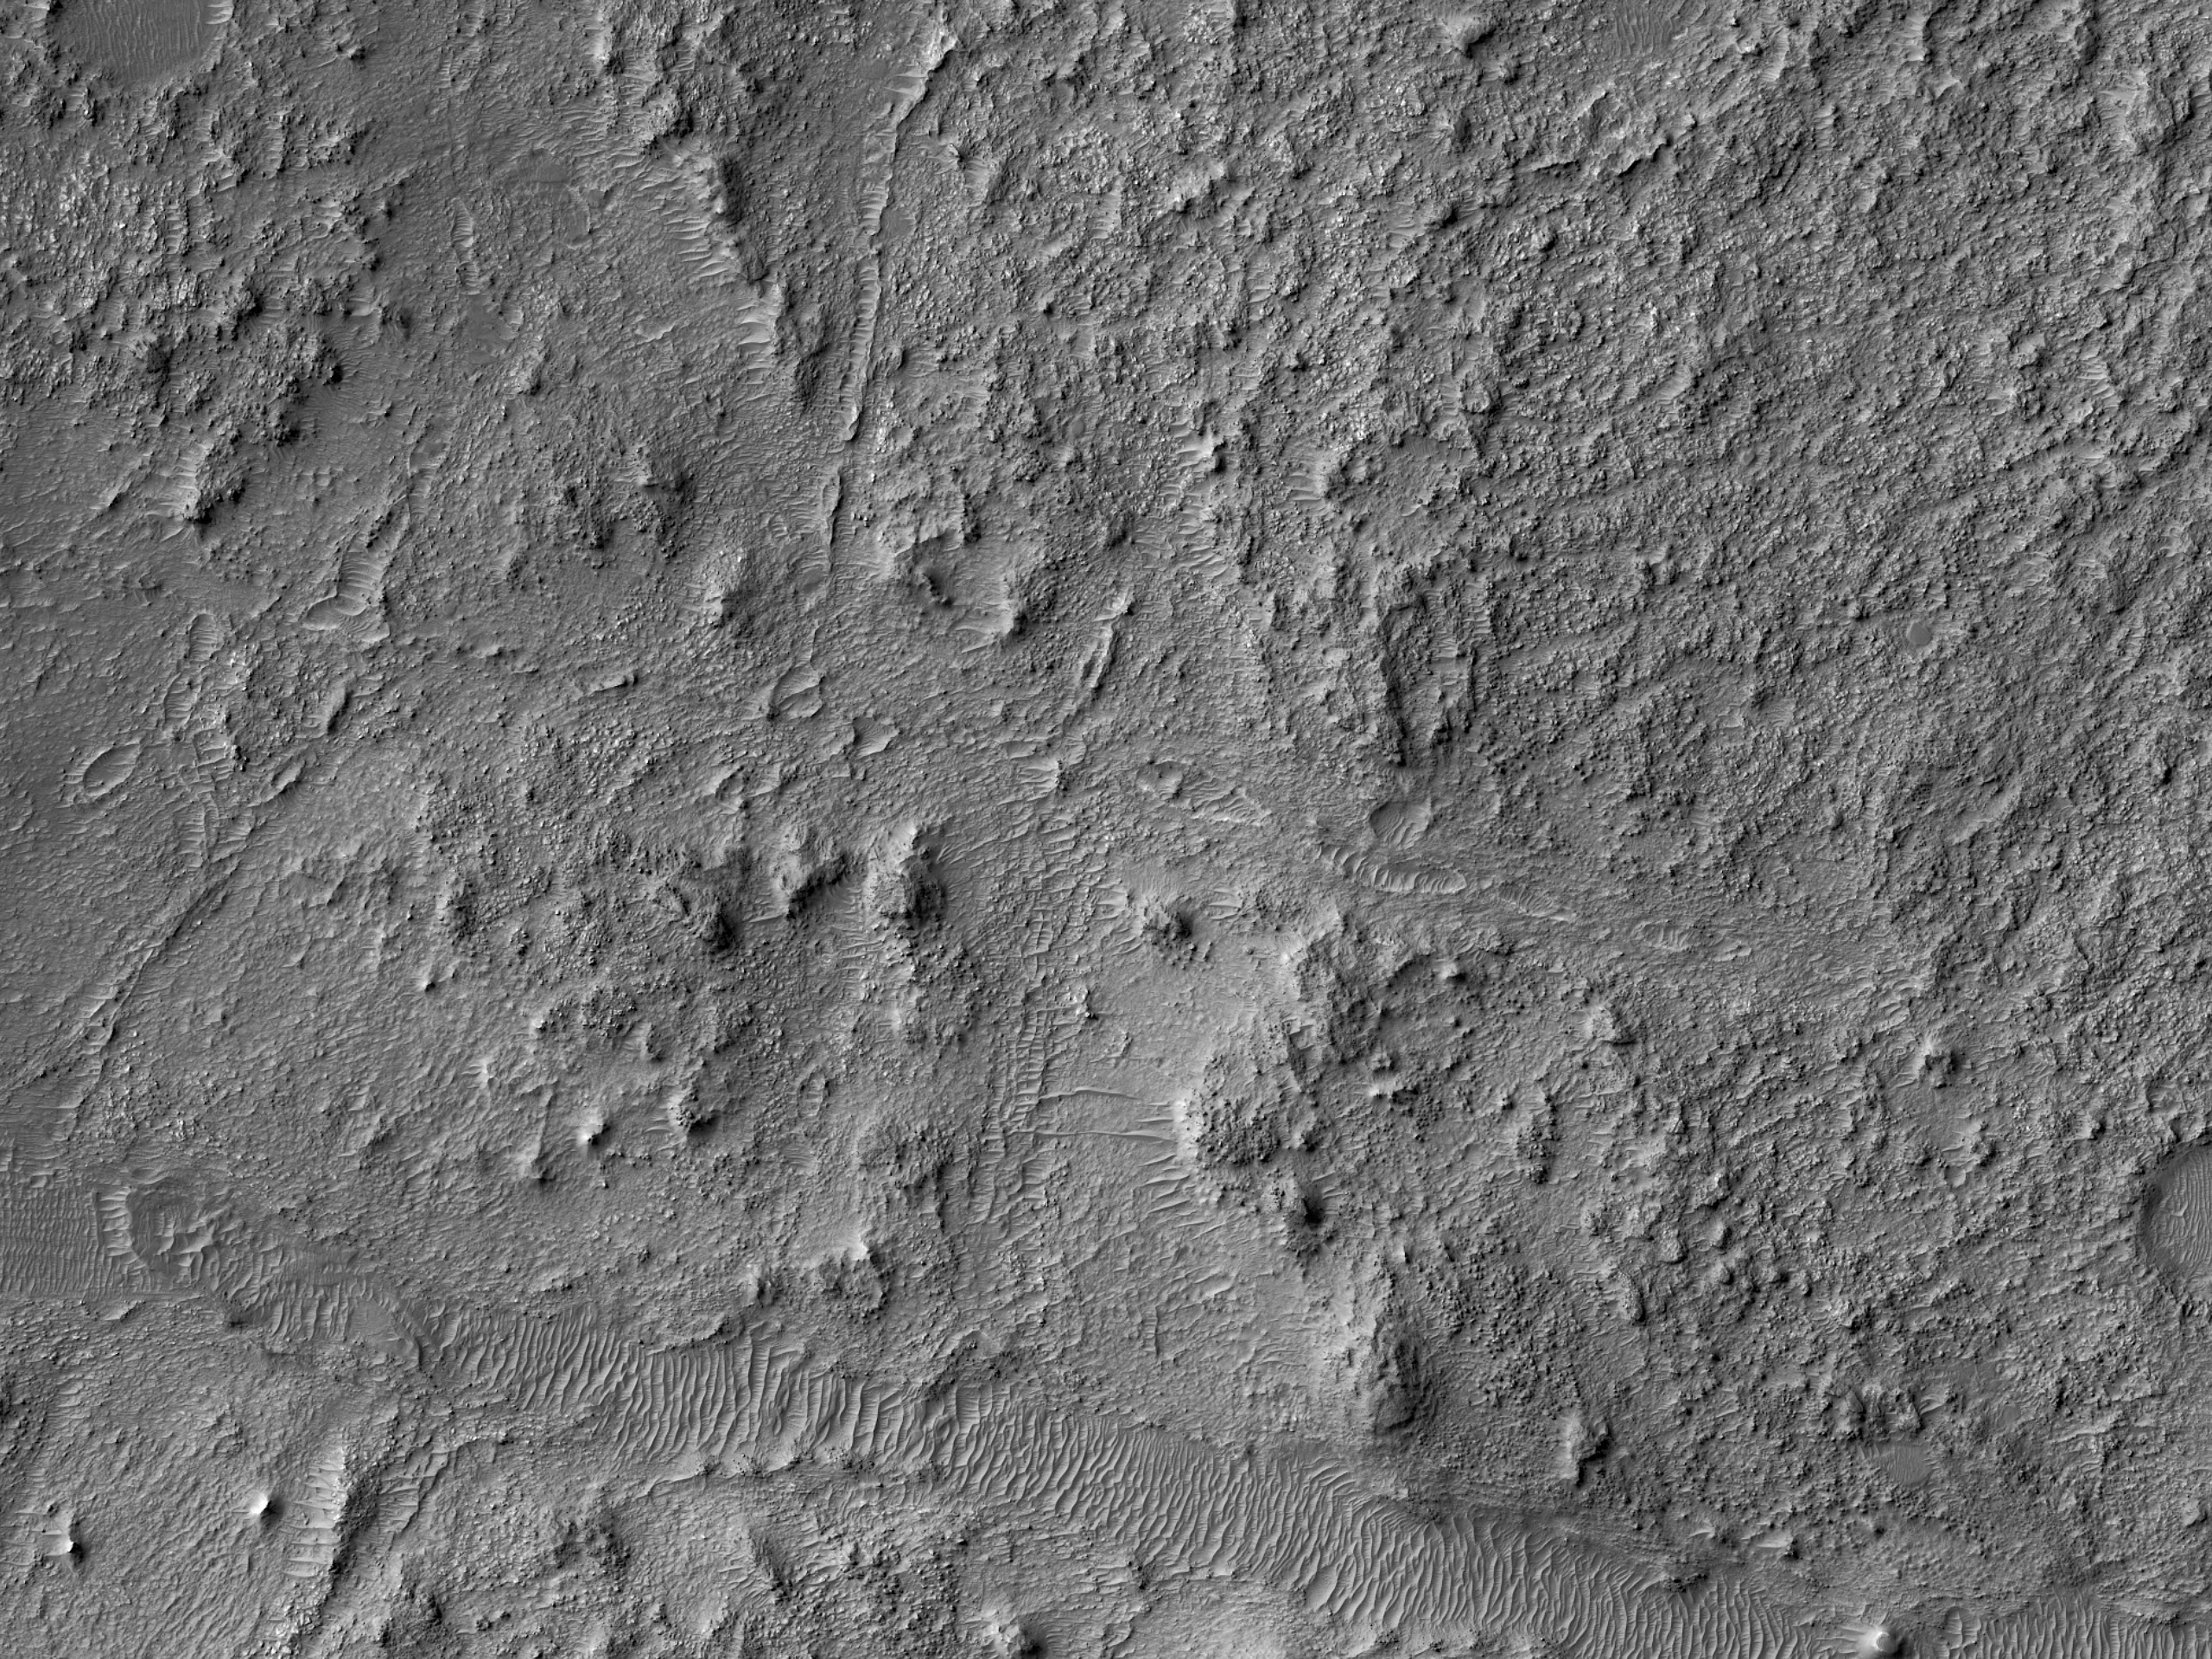 Fractured Bedrock on a Crater Floor